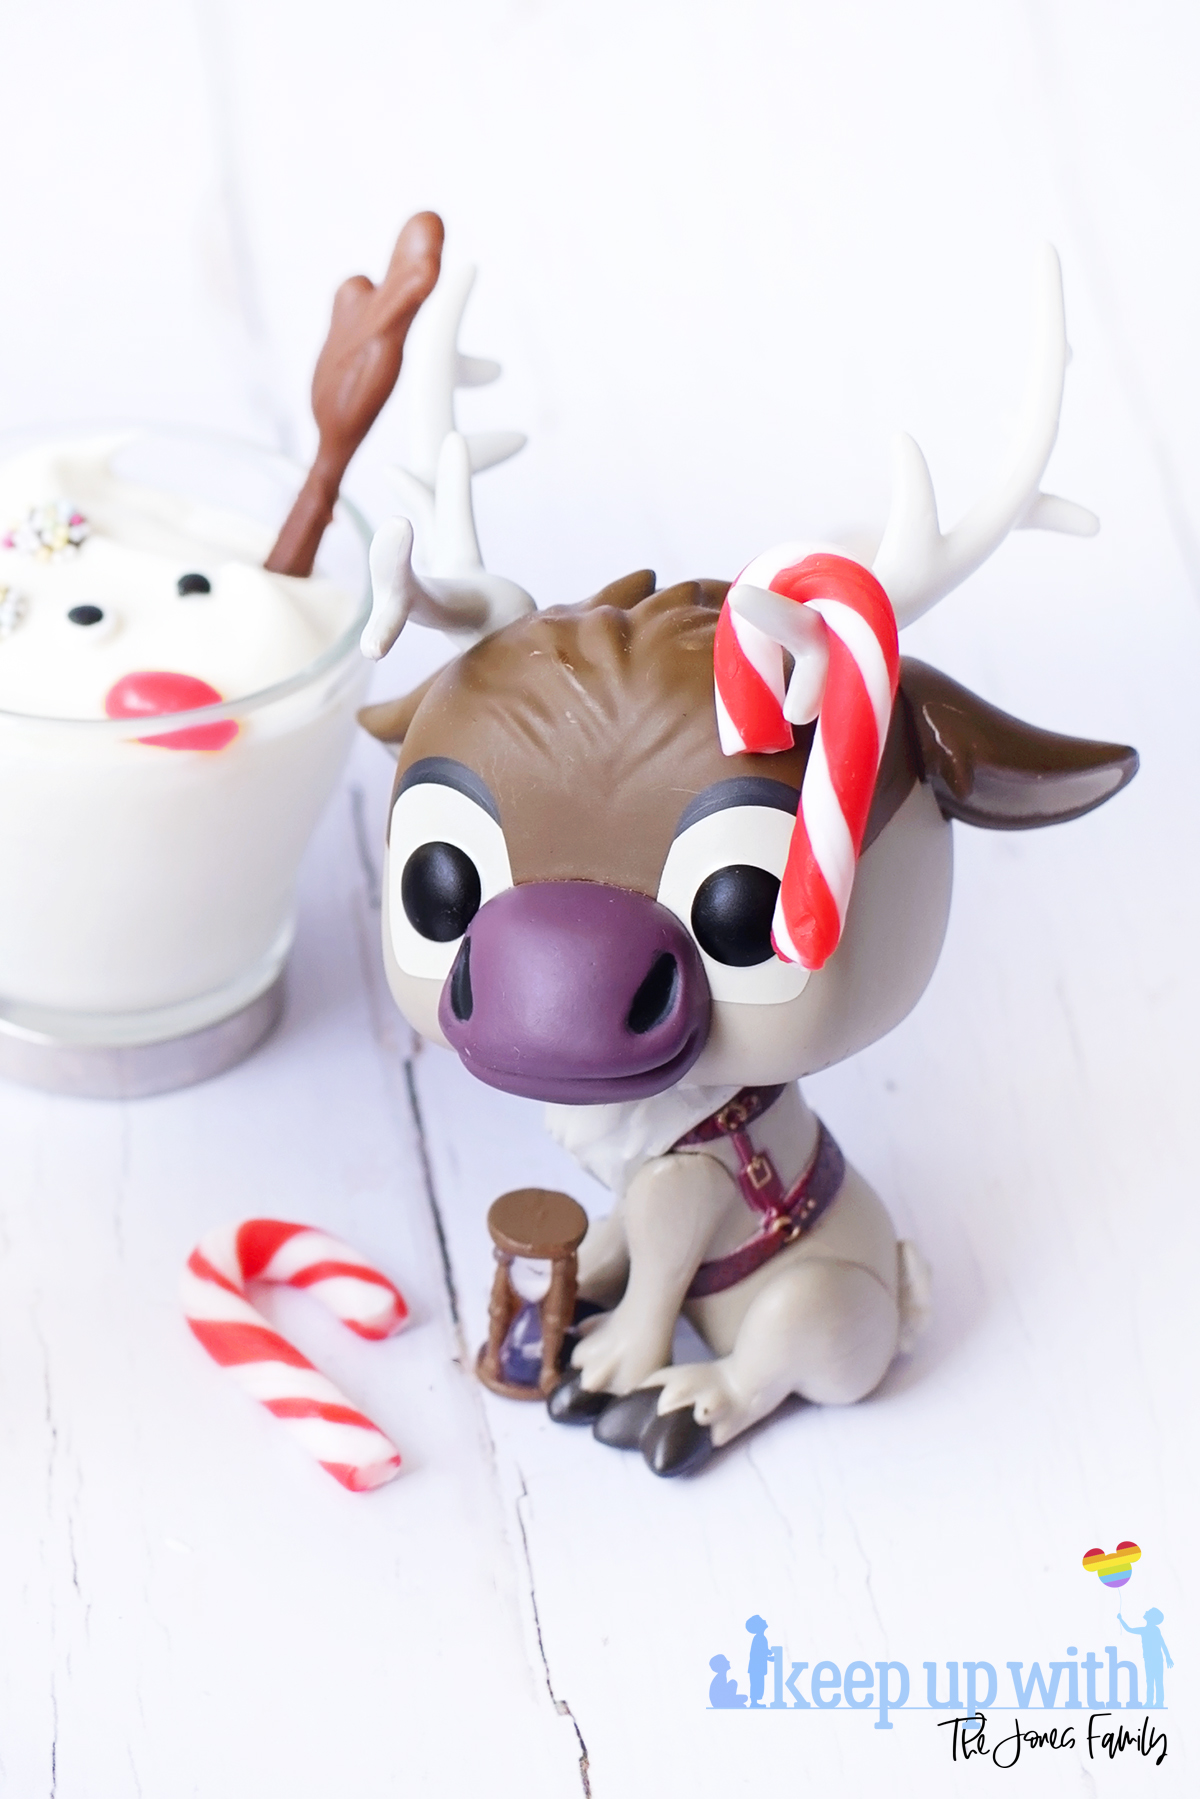 Image shows a Disney's Frozen Sven the Reindeer Funko Pop Vinyl decorated with mini red and white peppermint candy canes on his antlers. The figure is sitting next to a Melted Sven the Reindeer Yoghurts in glass cups with silver handles, on a white wooden tabletop. Image by Keep Up With The Jones Family.